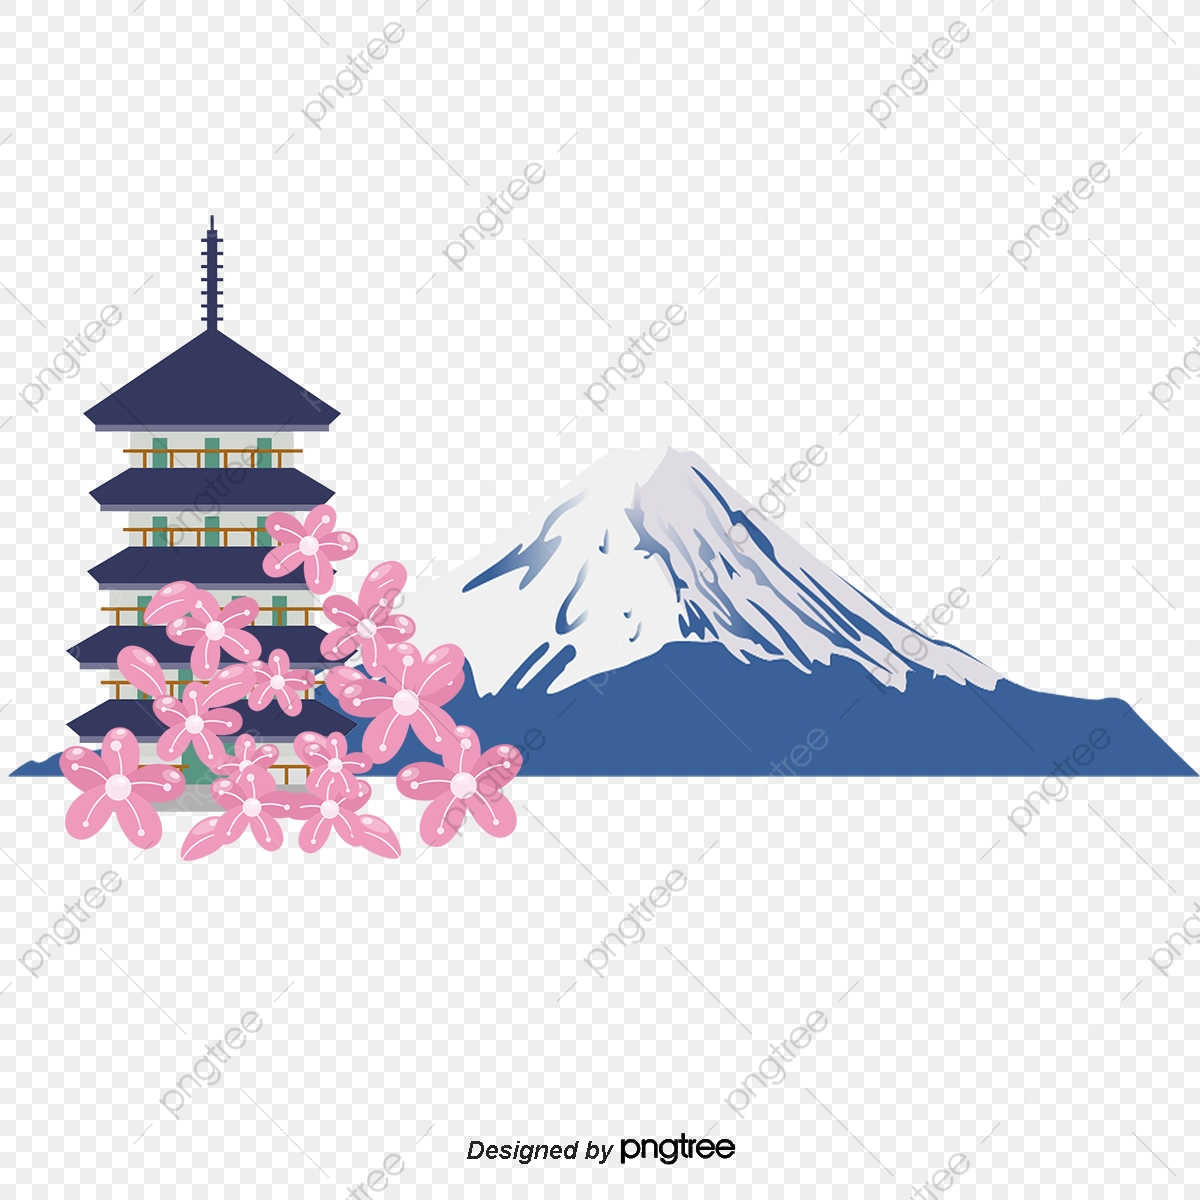 Mount Fuji And Japanese Tower Japanese Pagoda Mount Fuji Vector Png Transparent Clipart Image And Psd File For Free Download